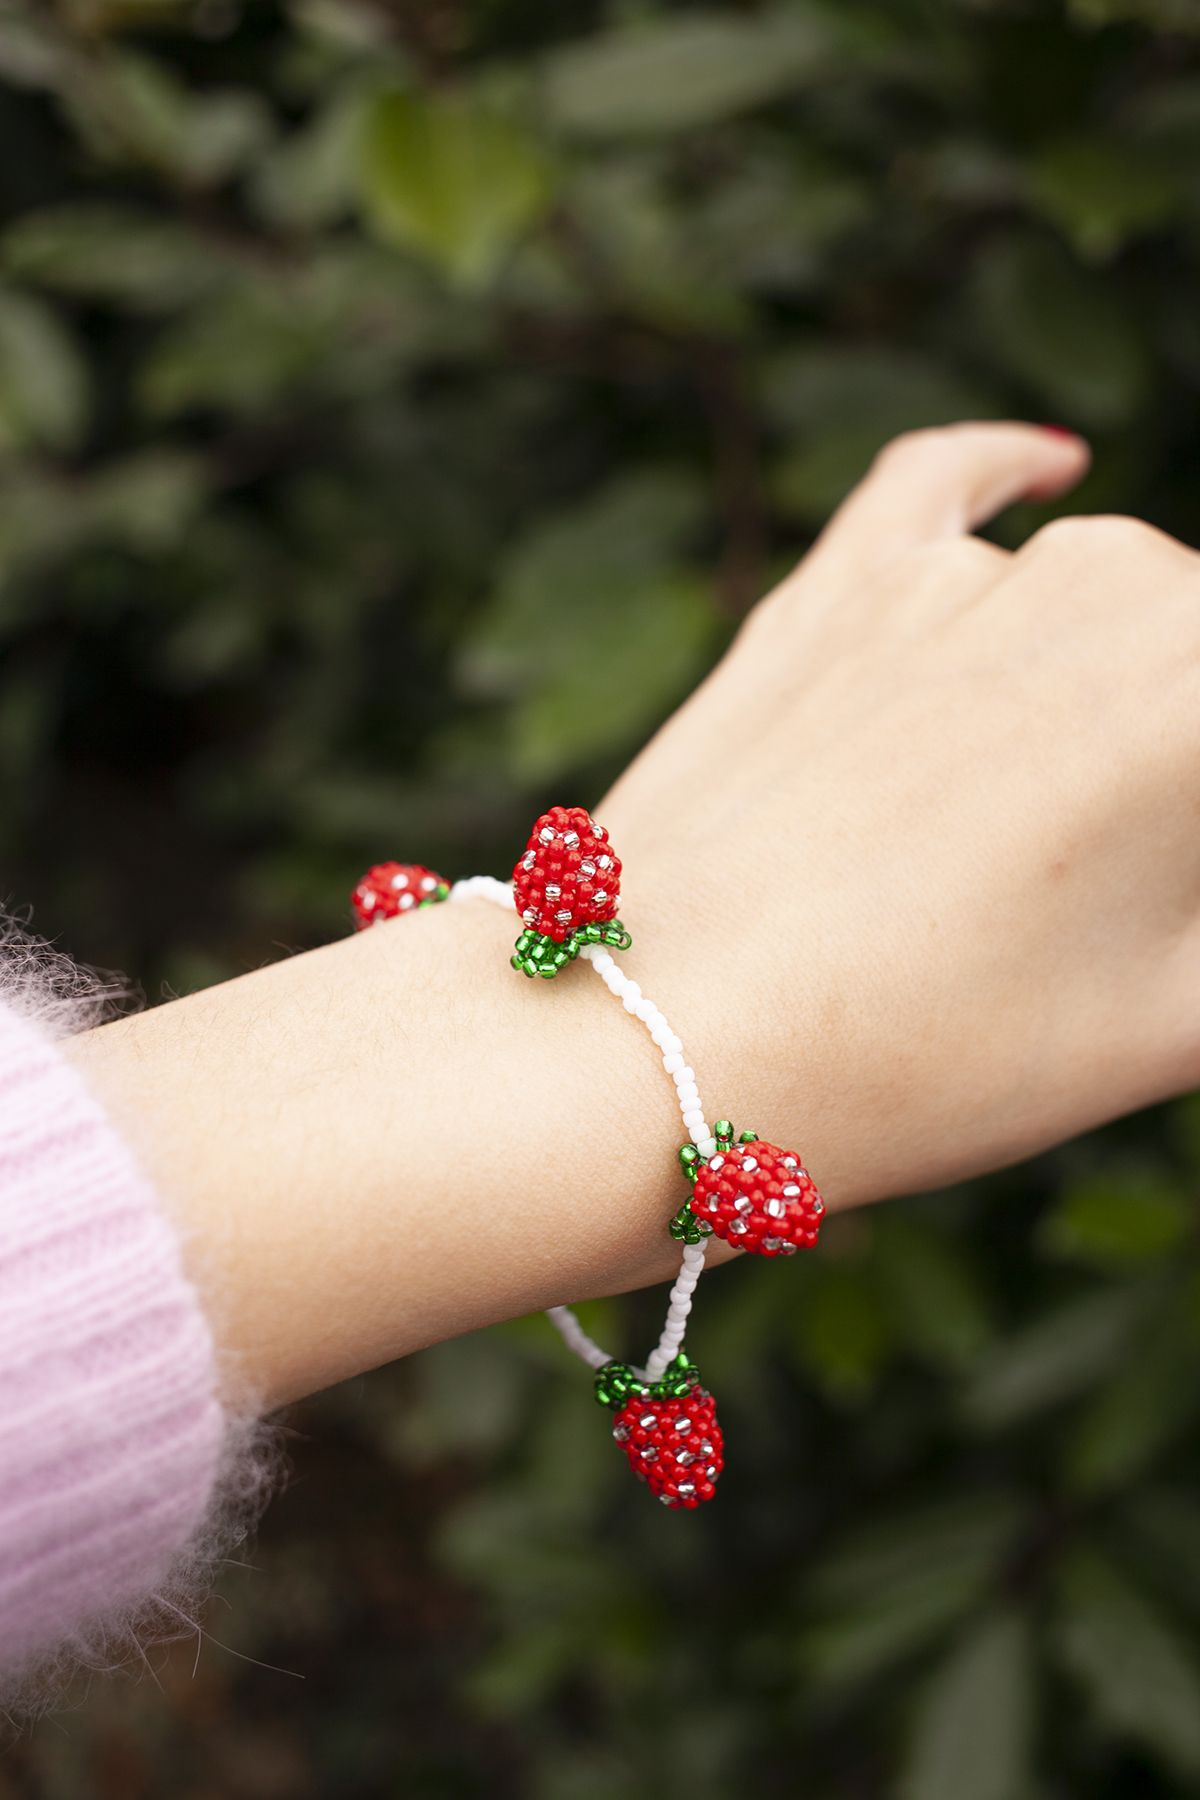 The Baby Berry Banquet Bracelet